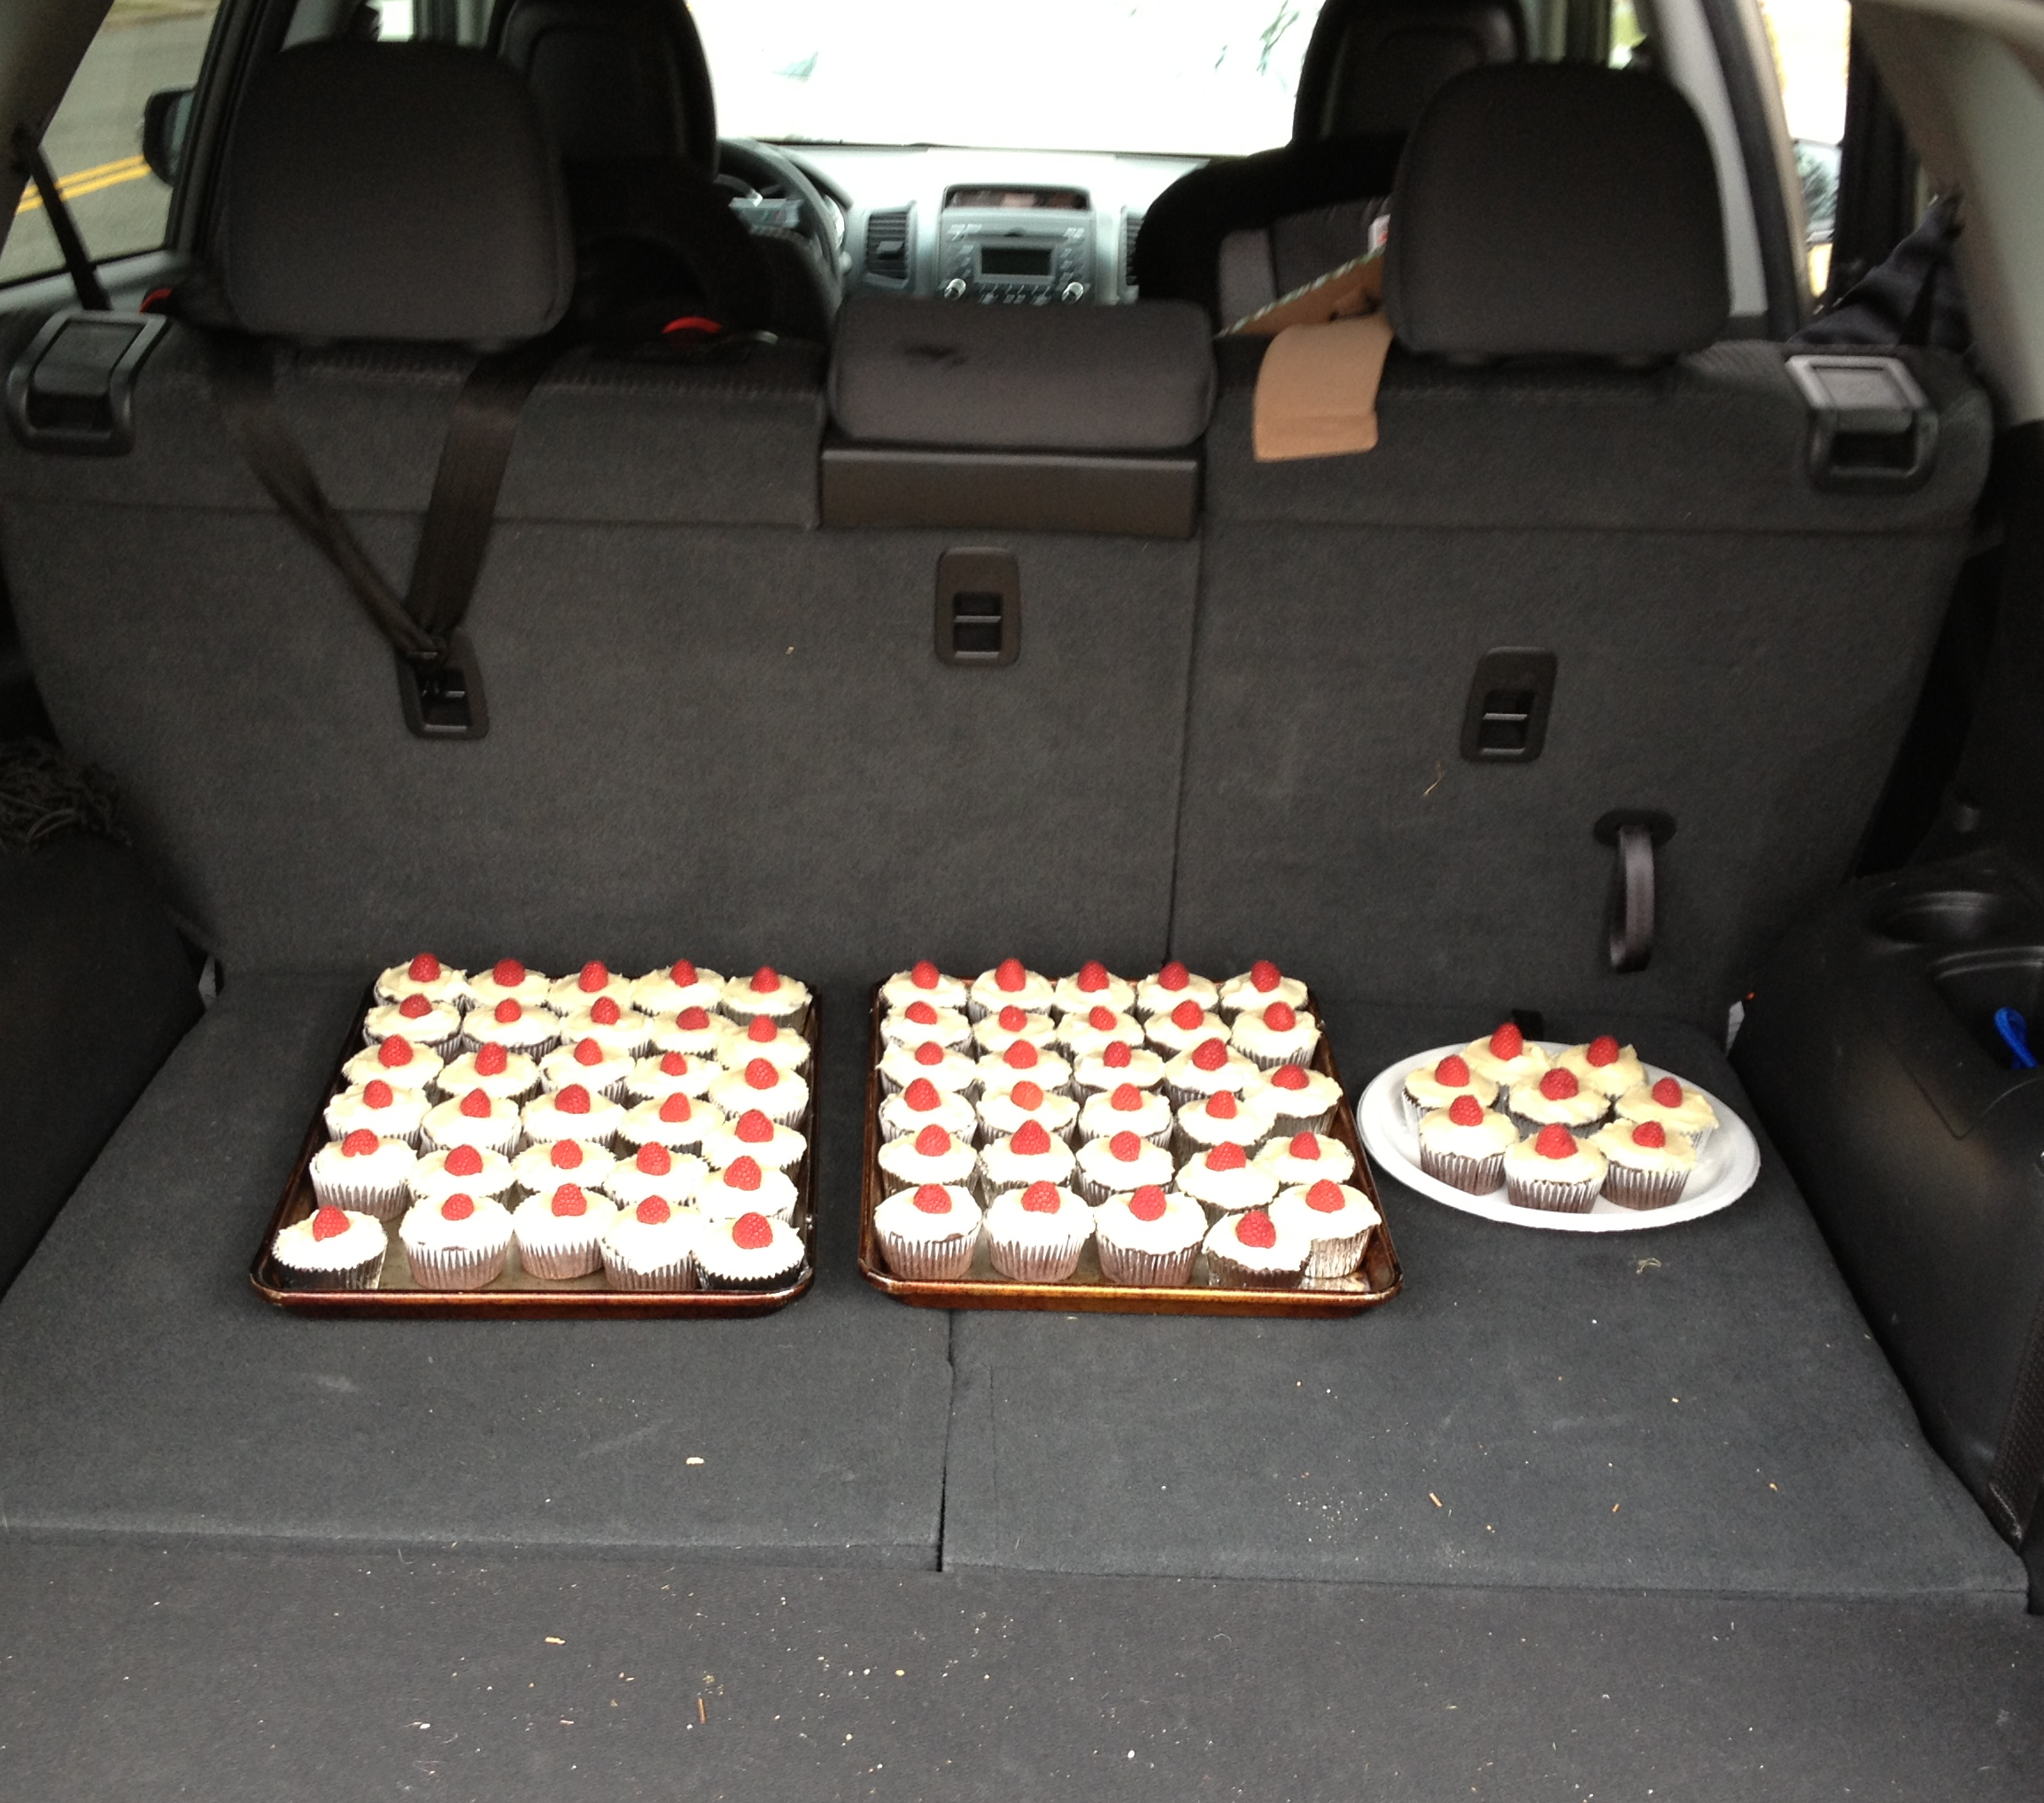 Cupcakes loaded up in the trunk